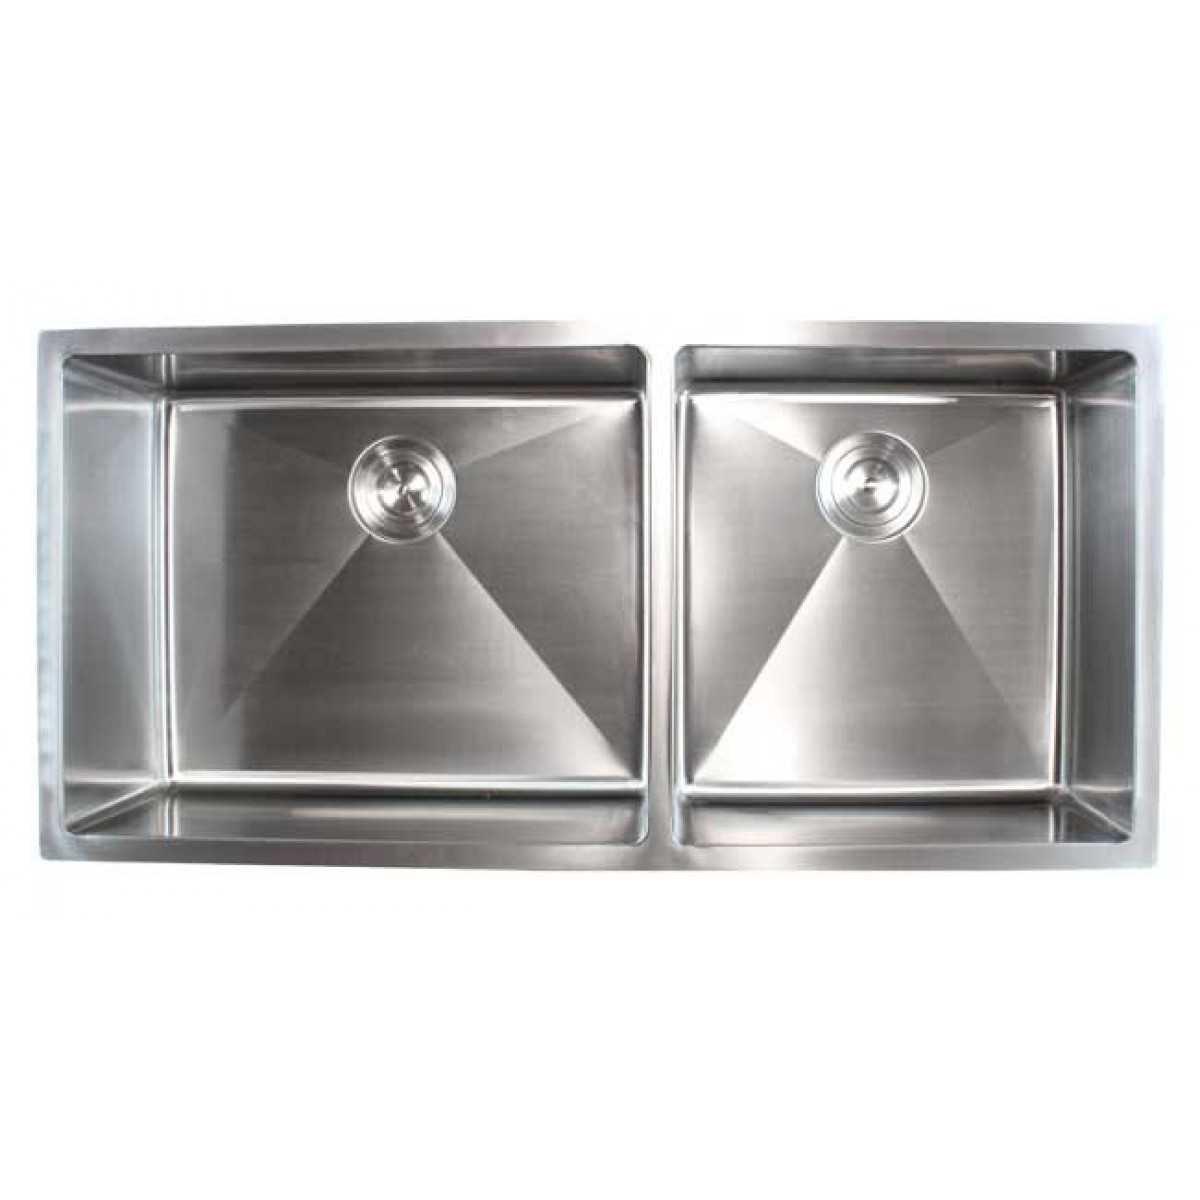 Contemporary Kitchen Designed With Undermount Sink And Led: Ariel 42 Inch Stainless Steel Undermount Double Bowl